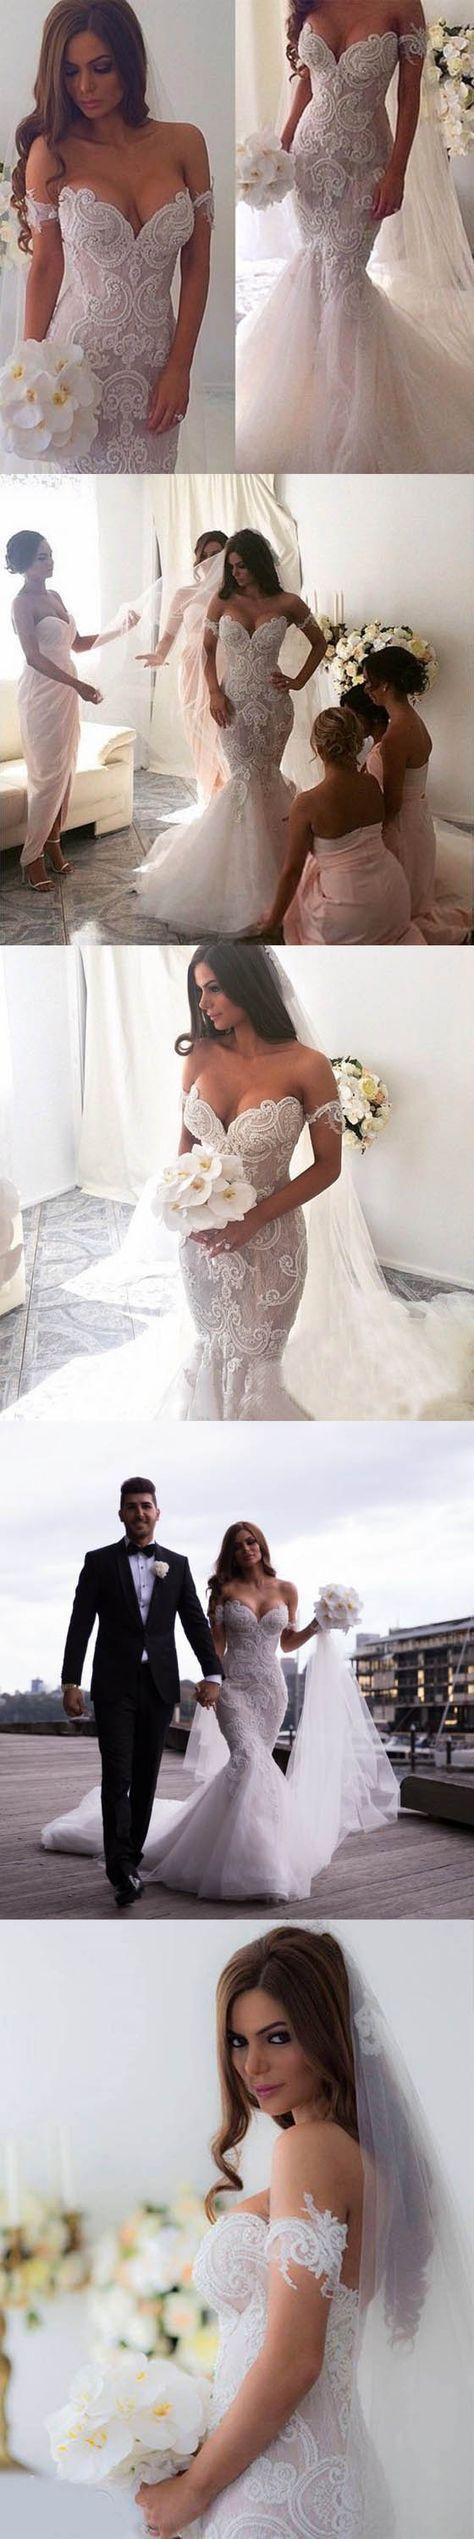 Wedding - Off The Shoulder Mermaid Applique Charming Long Wedding Dress, BG51610 - US0 / Picture Color